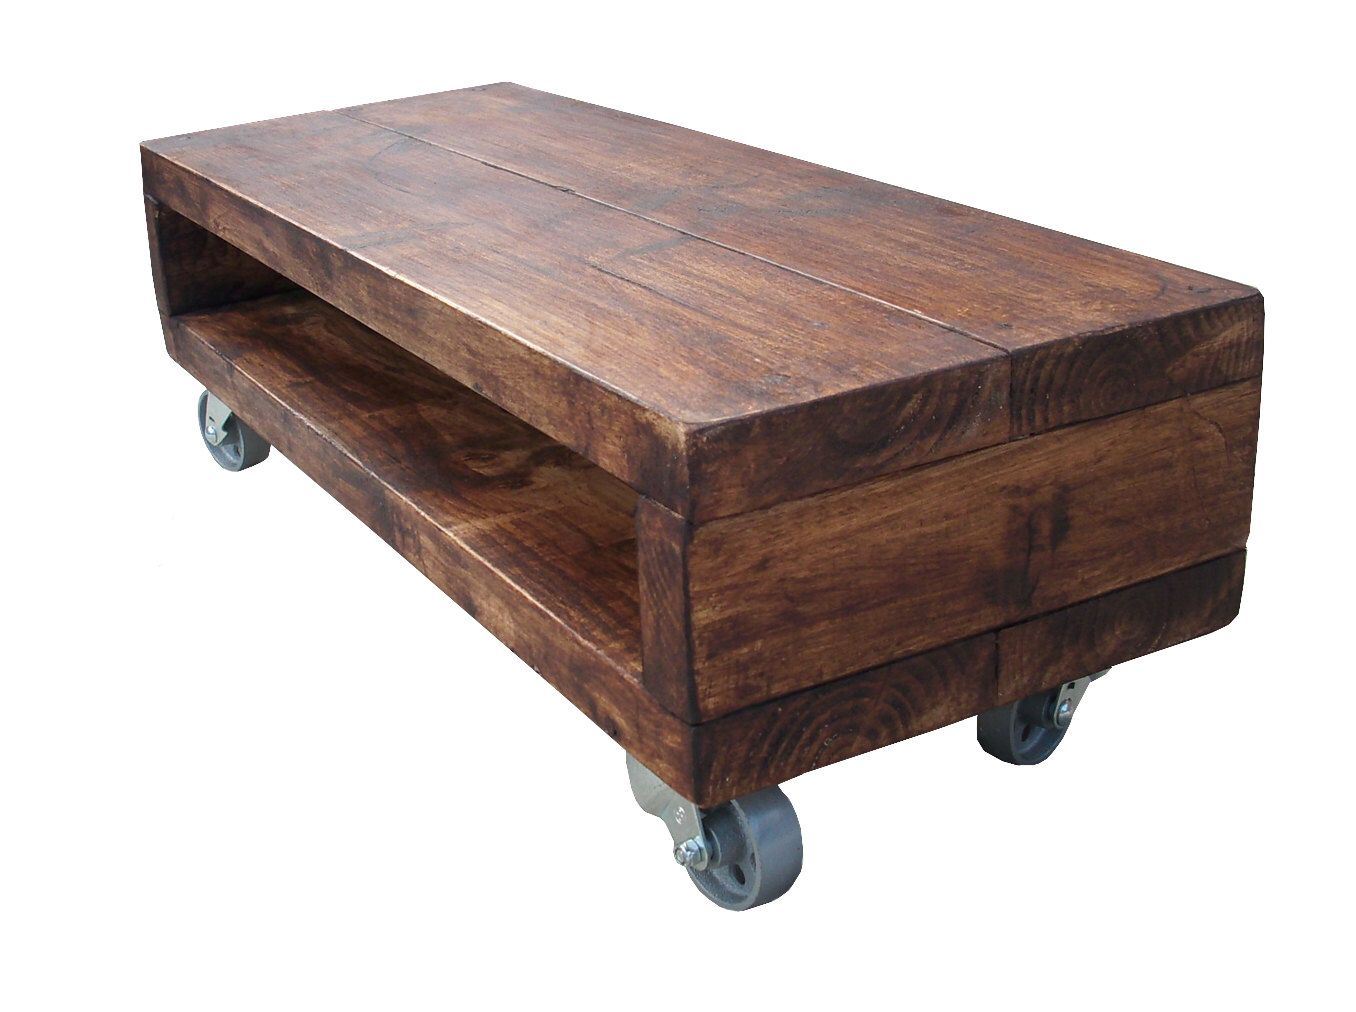 industrial style rustic coffee table tv stand cherry wood finish with cast industrial swivel. Black Bedroom Furniture Sets. Home Design Ideas